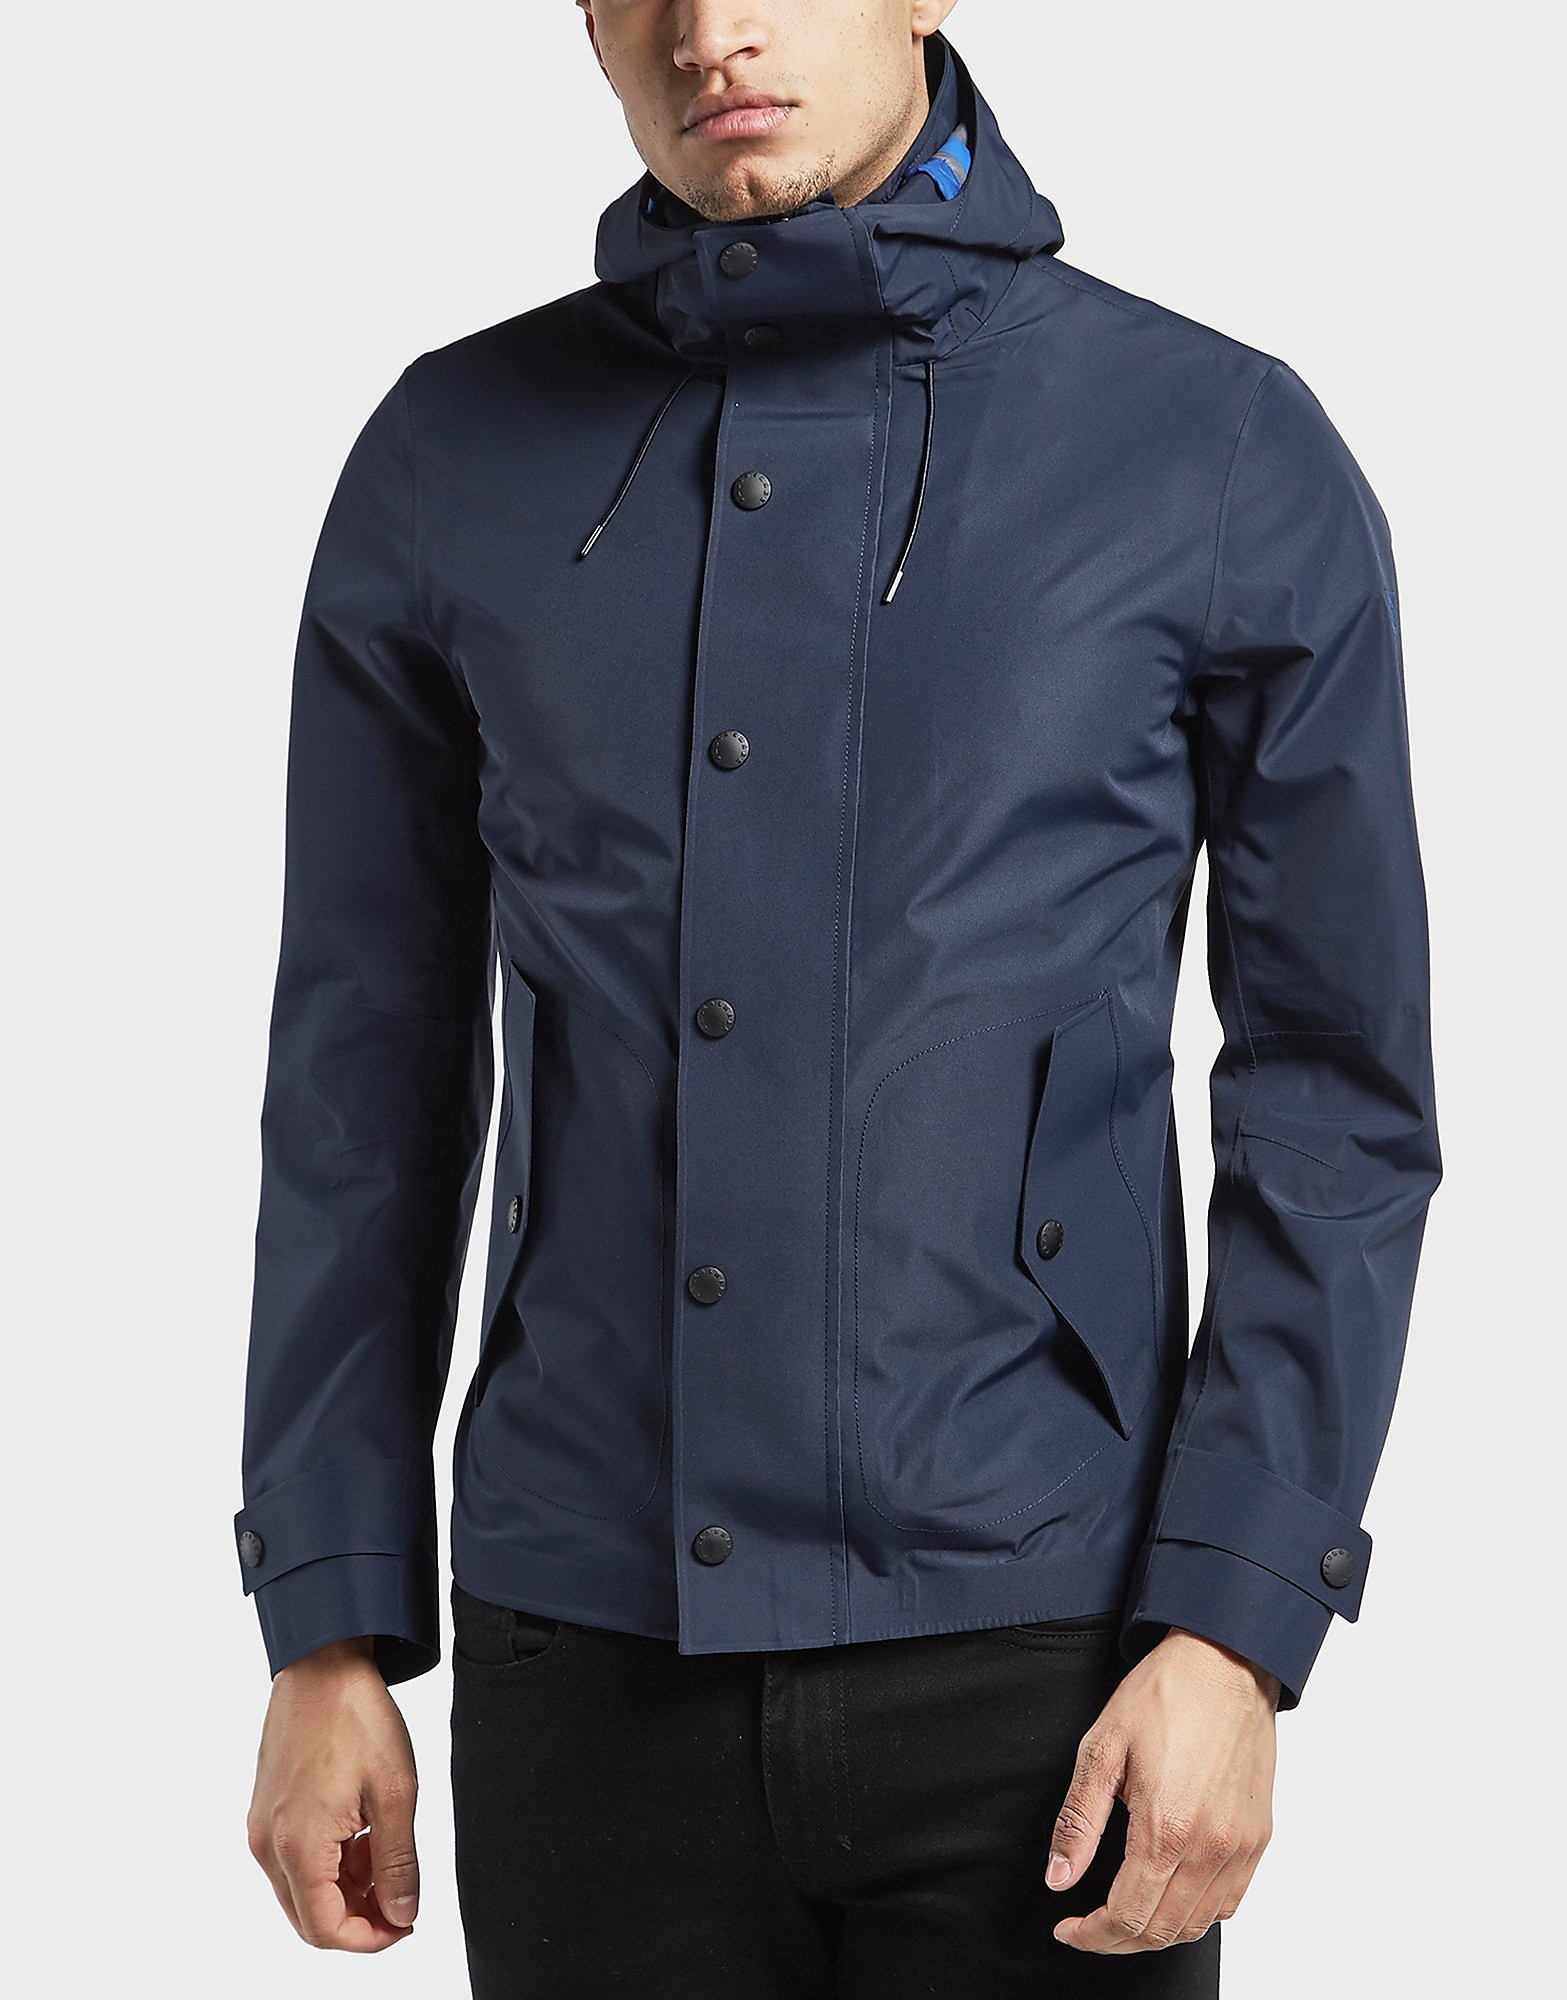 Paul and Shark Typhoon Lightweight Jacket